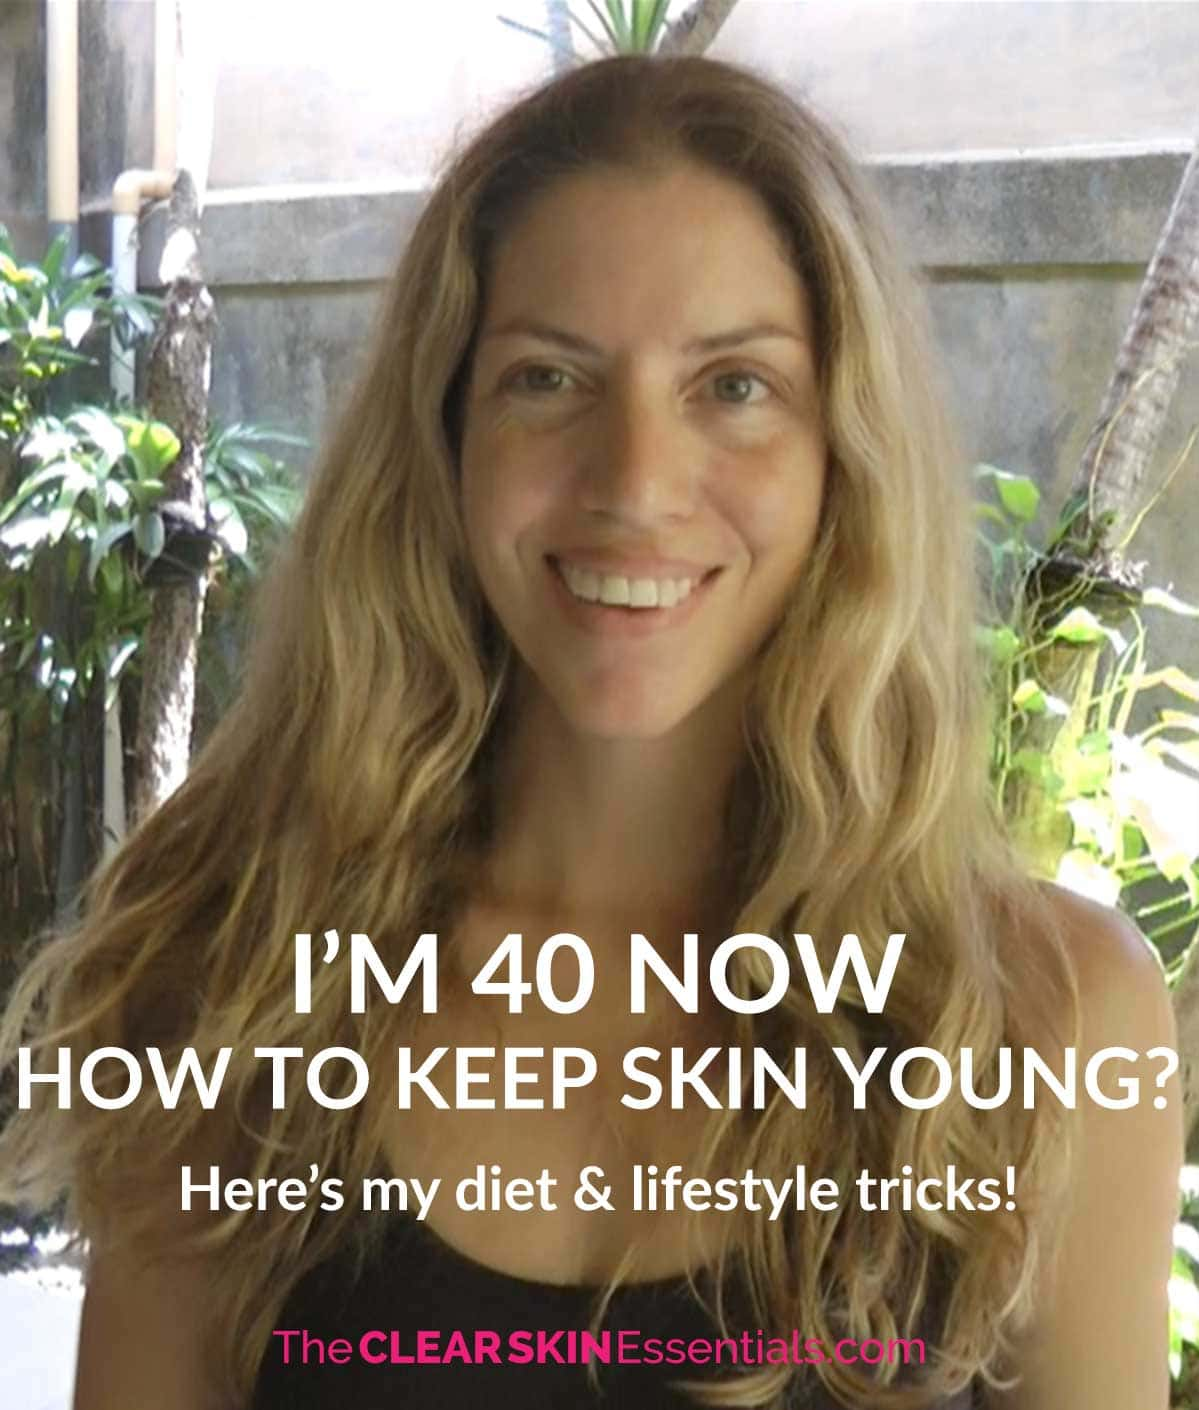 I just turned 40, here's my diet, skincare, and lifestyle antiaging tips that have worked for me so far.